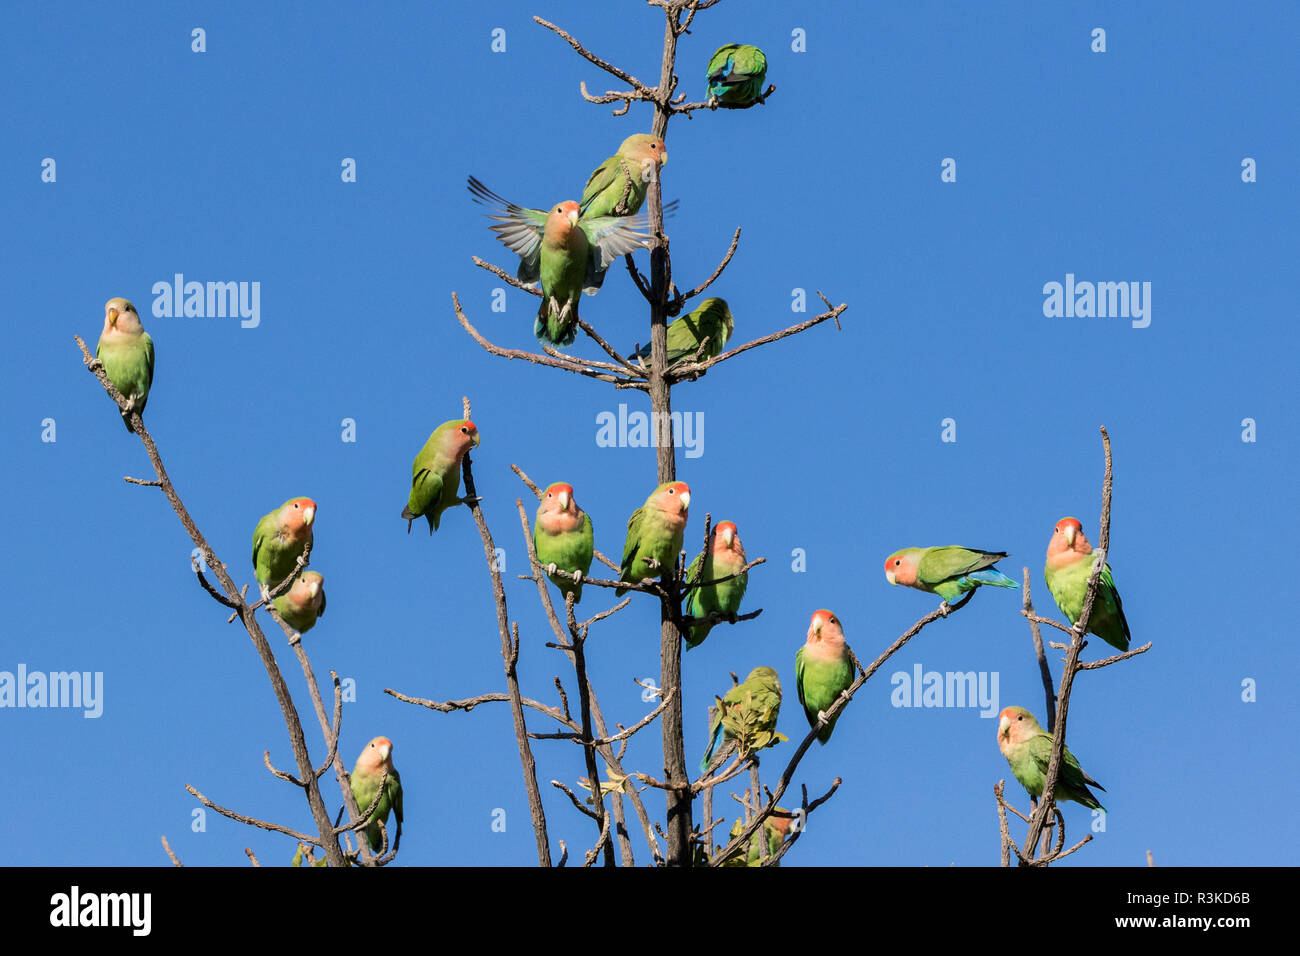 Africa Namibia Keetmanshoop Rosy Faced Lovebirds On Tree Credit As Wendy Kaveney Jaynes Gallery Danitadelimont Com Stock Photo Alamy